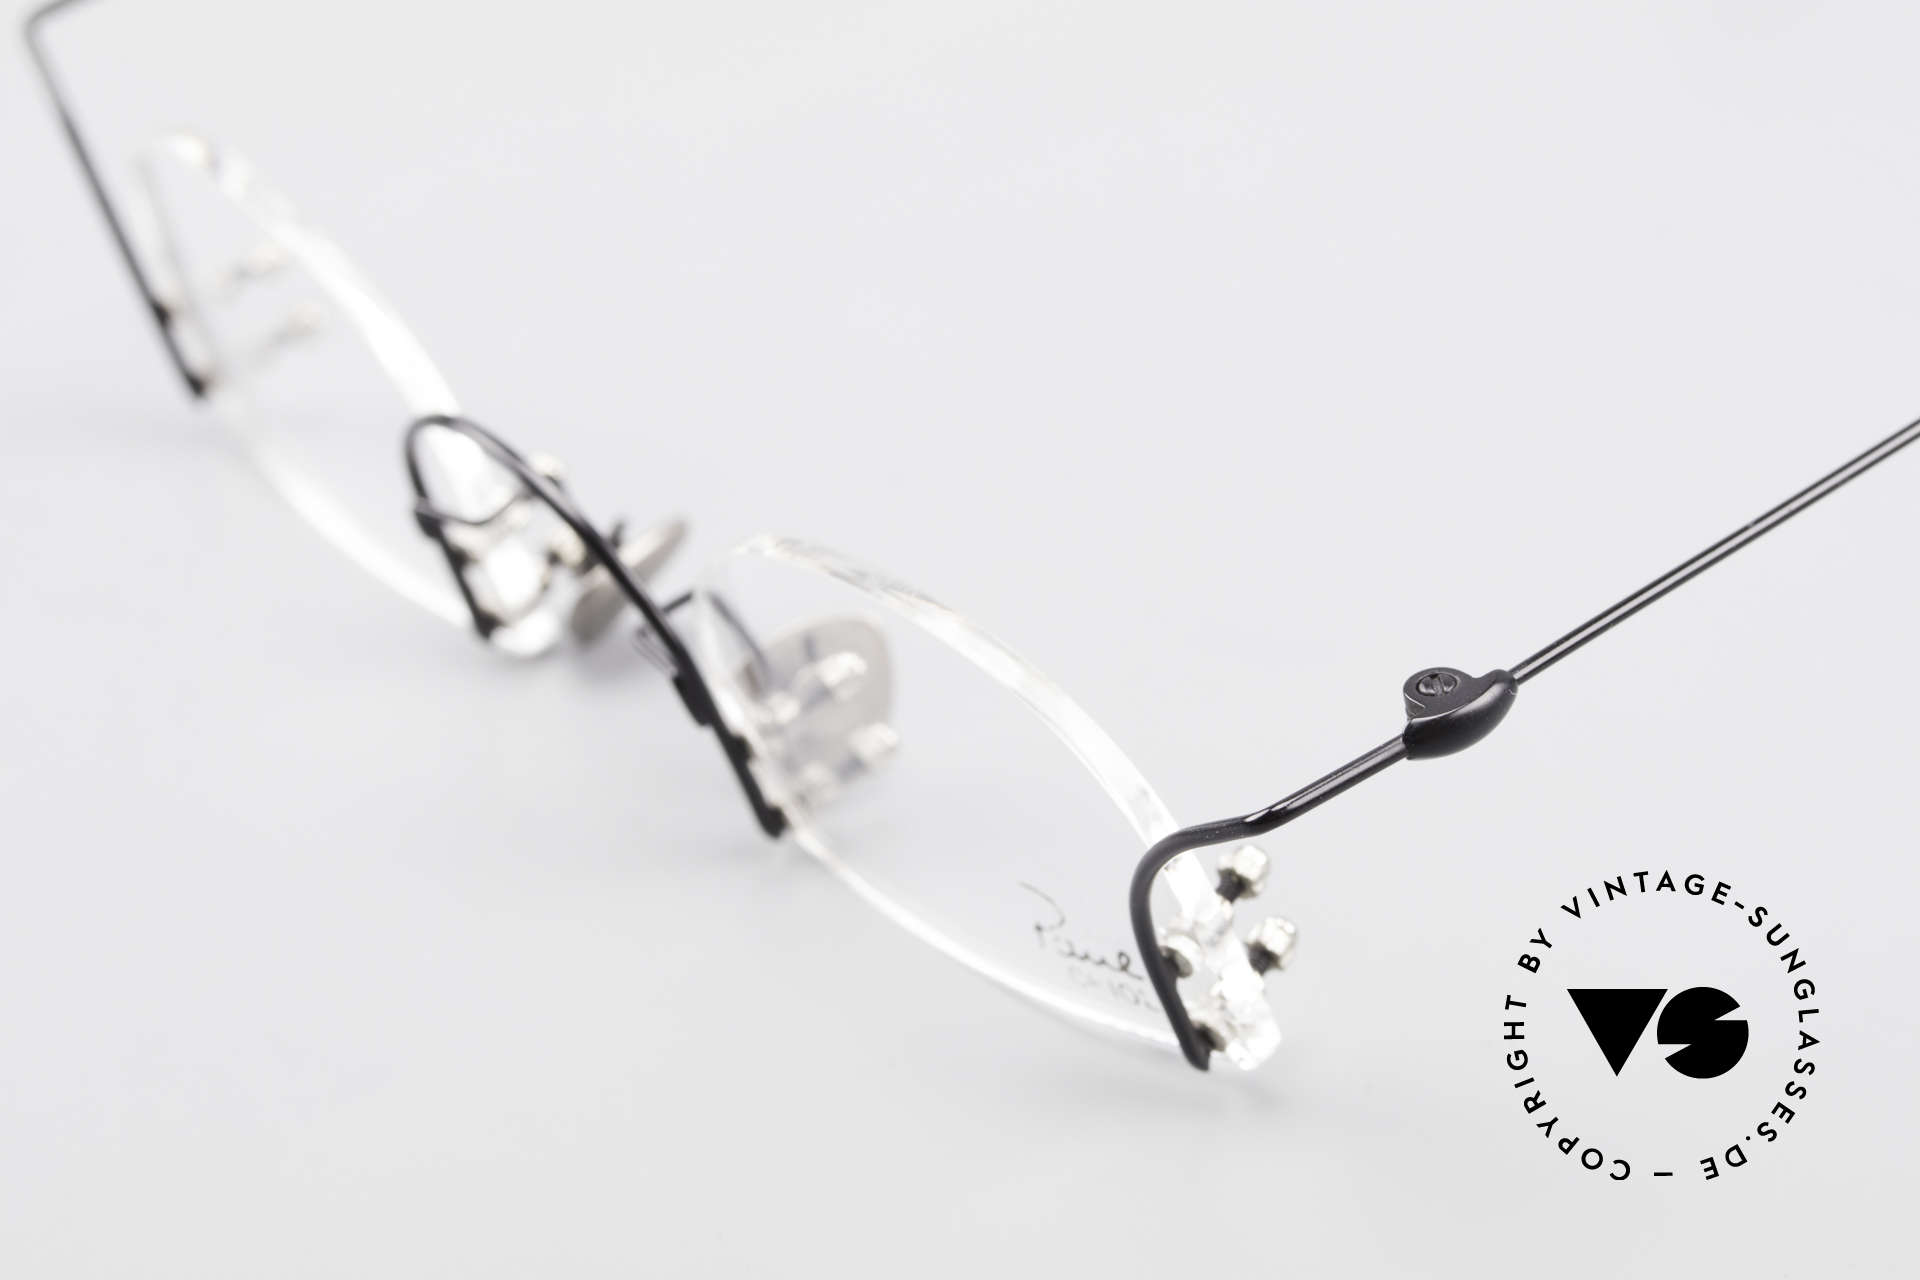 Paul Chiol 2000 Unique Rimless Eyeglasses, demo lenses can be replaced with optical lenses, Made for Men and Women